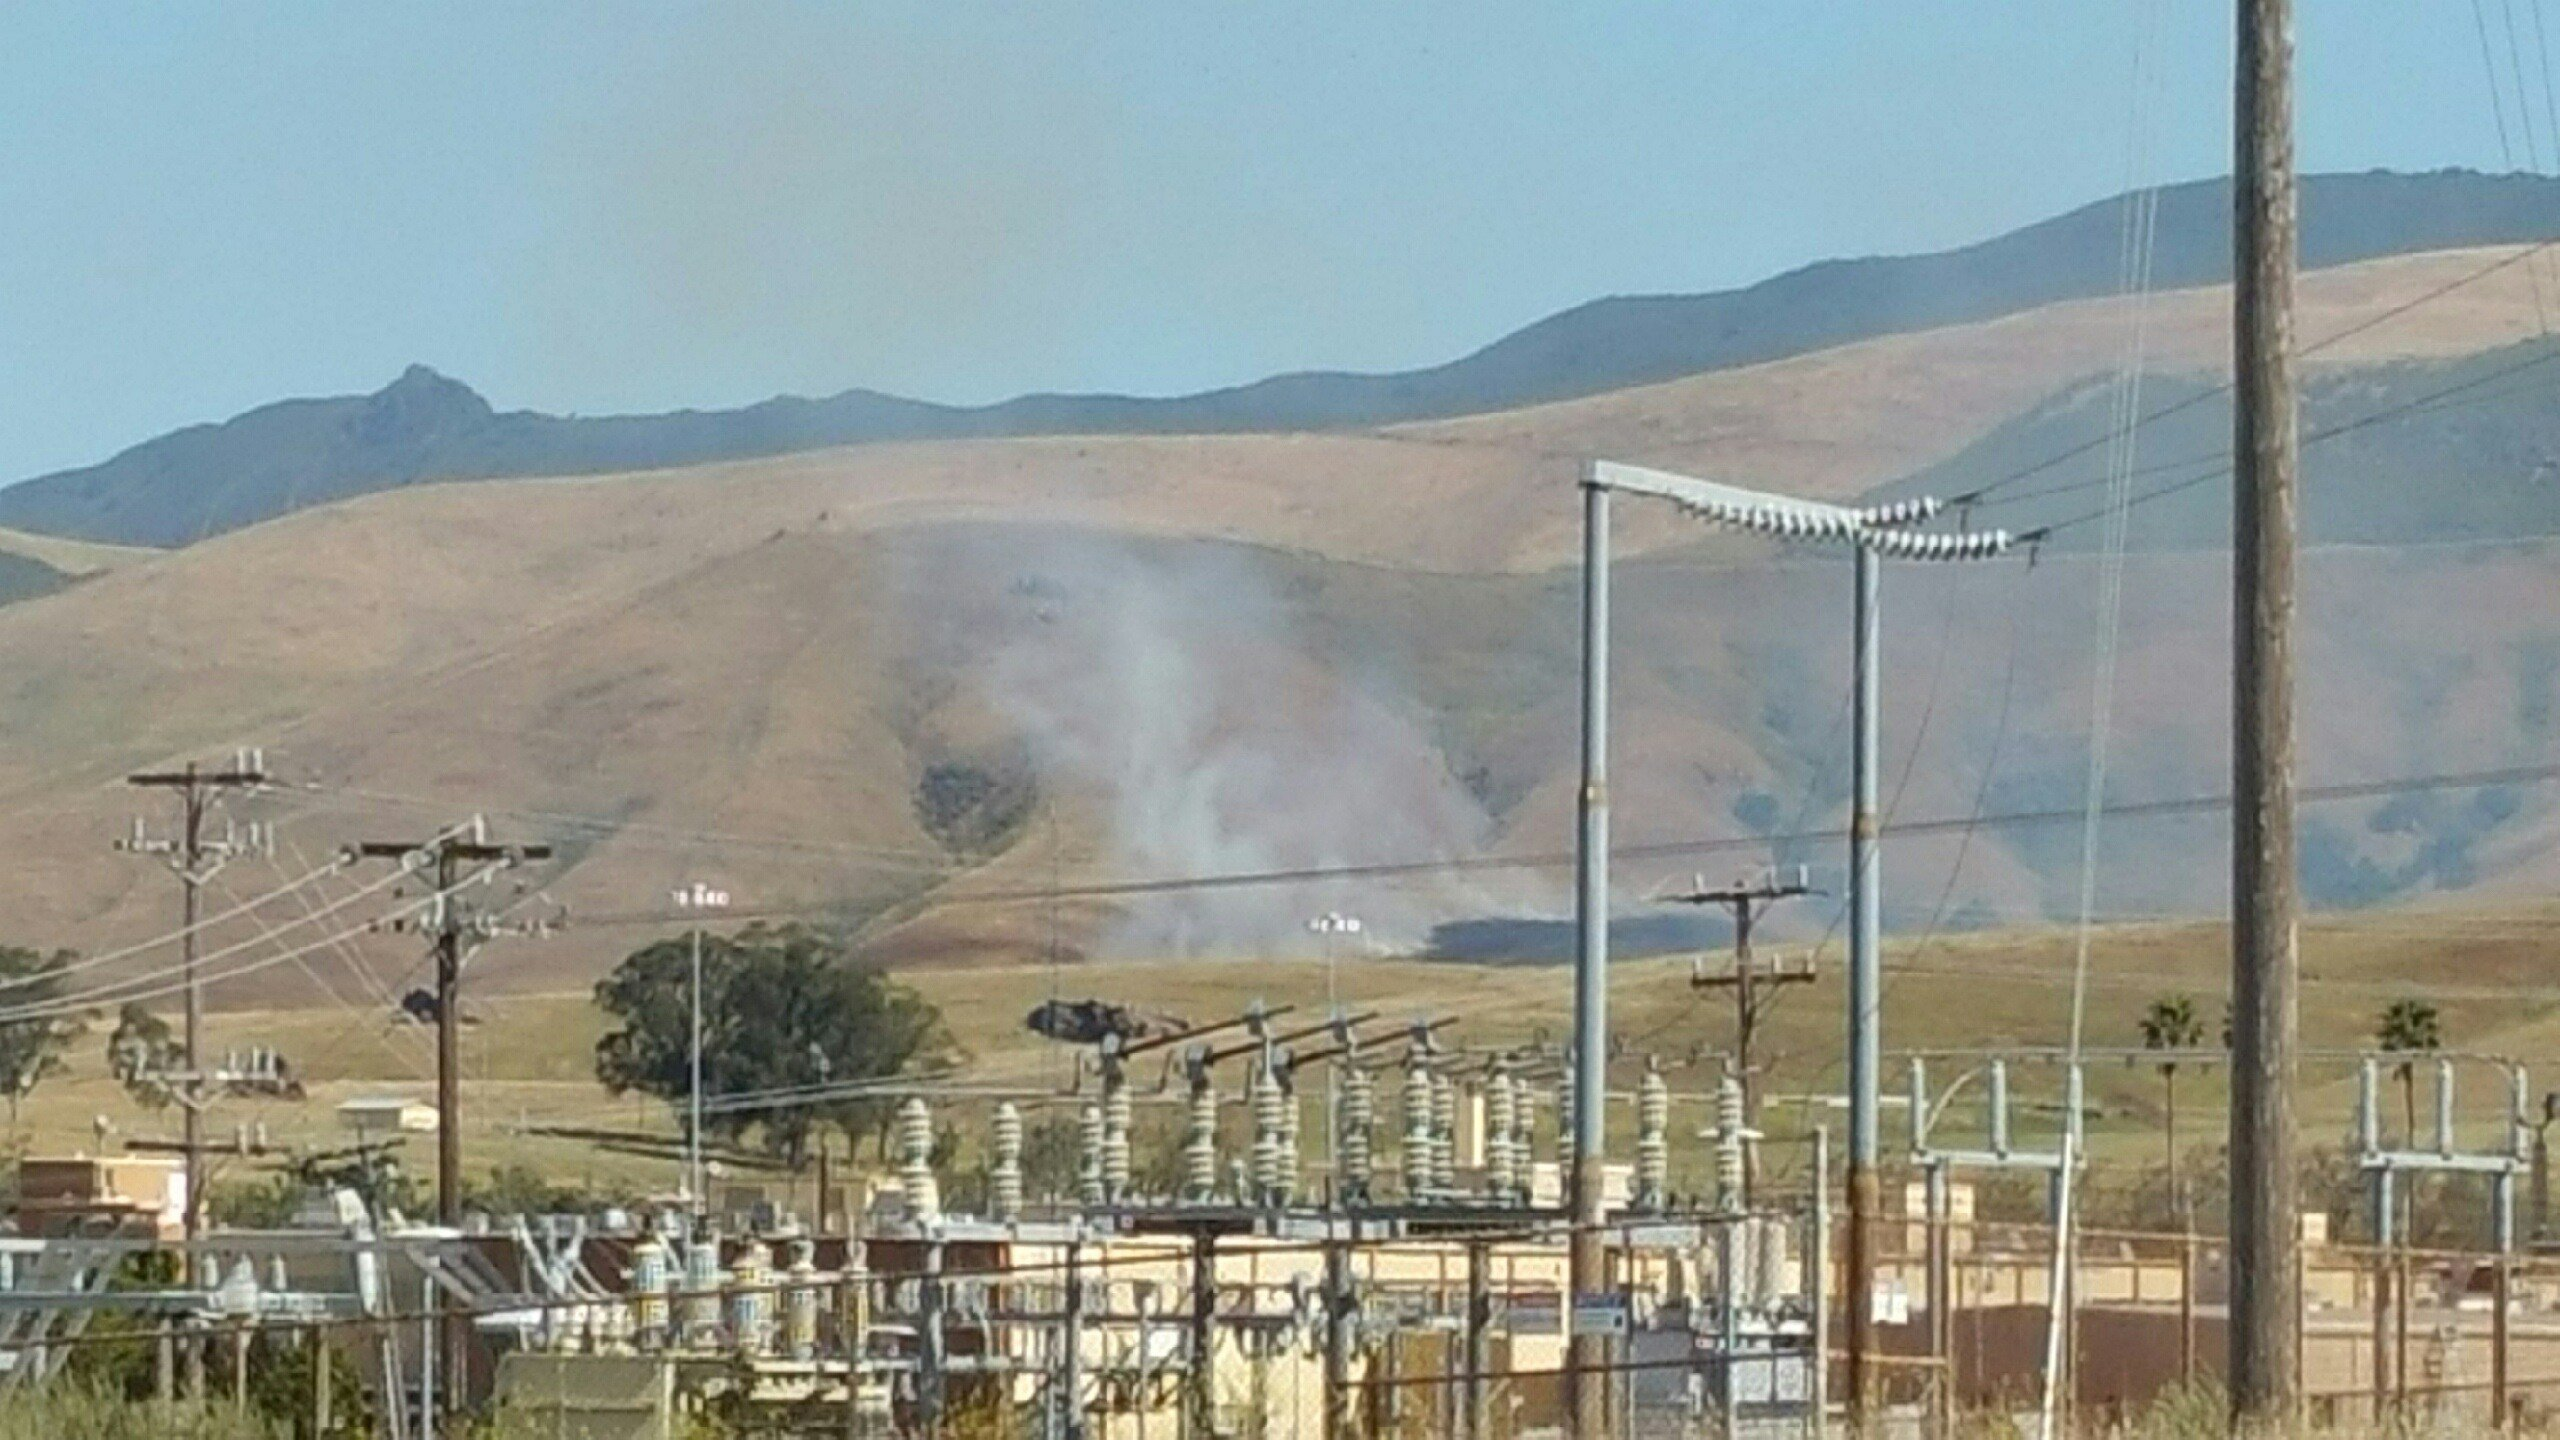 Smoke is seen from a fire at Camp San Luis Obispo. (KSBY photo)